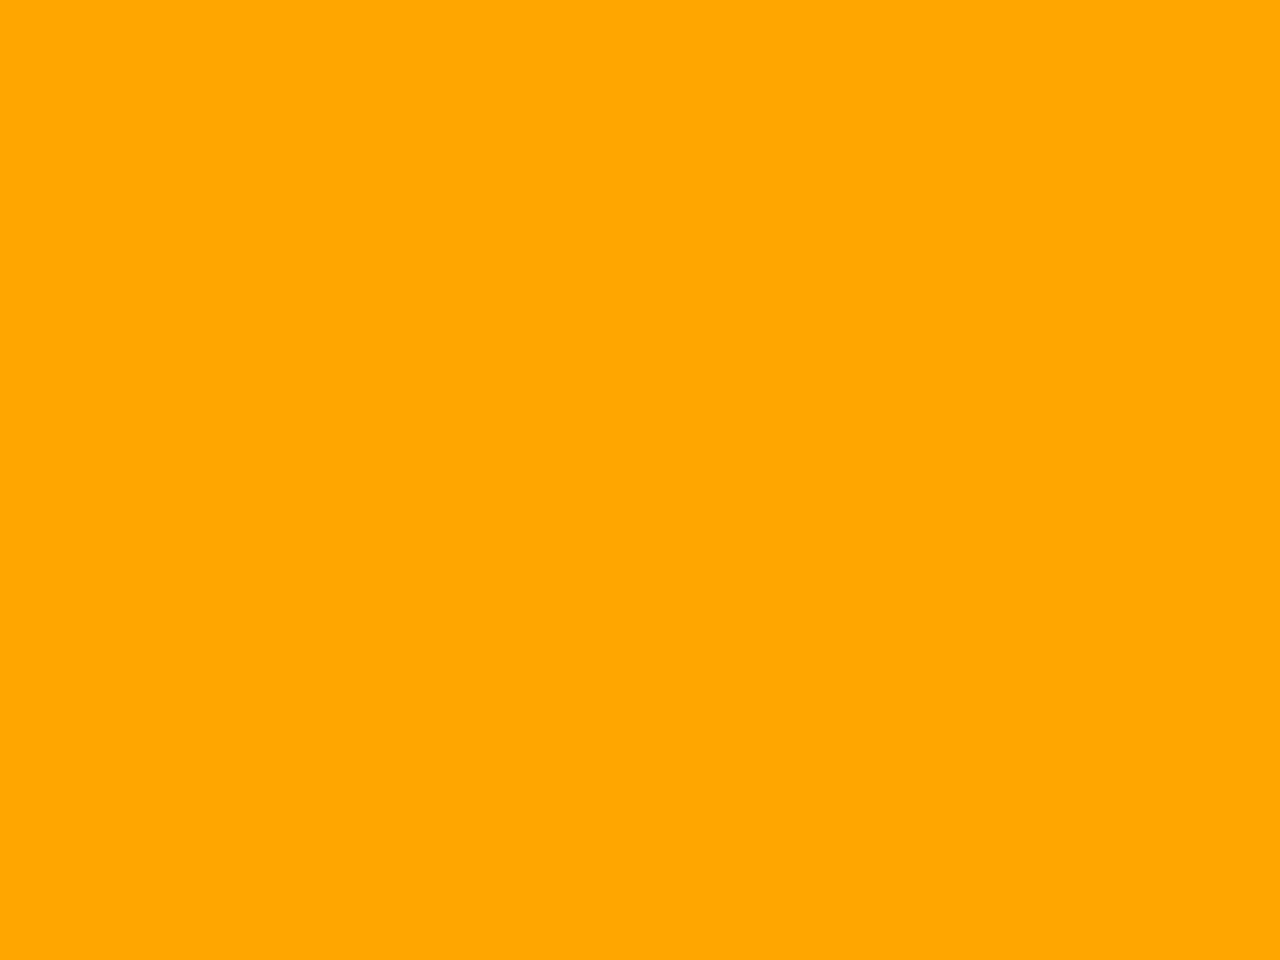 1280x960 Chrome Yellow Solid Color Background